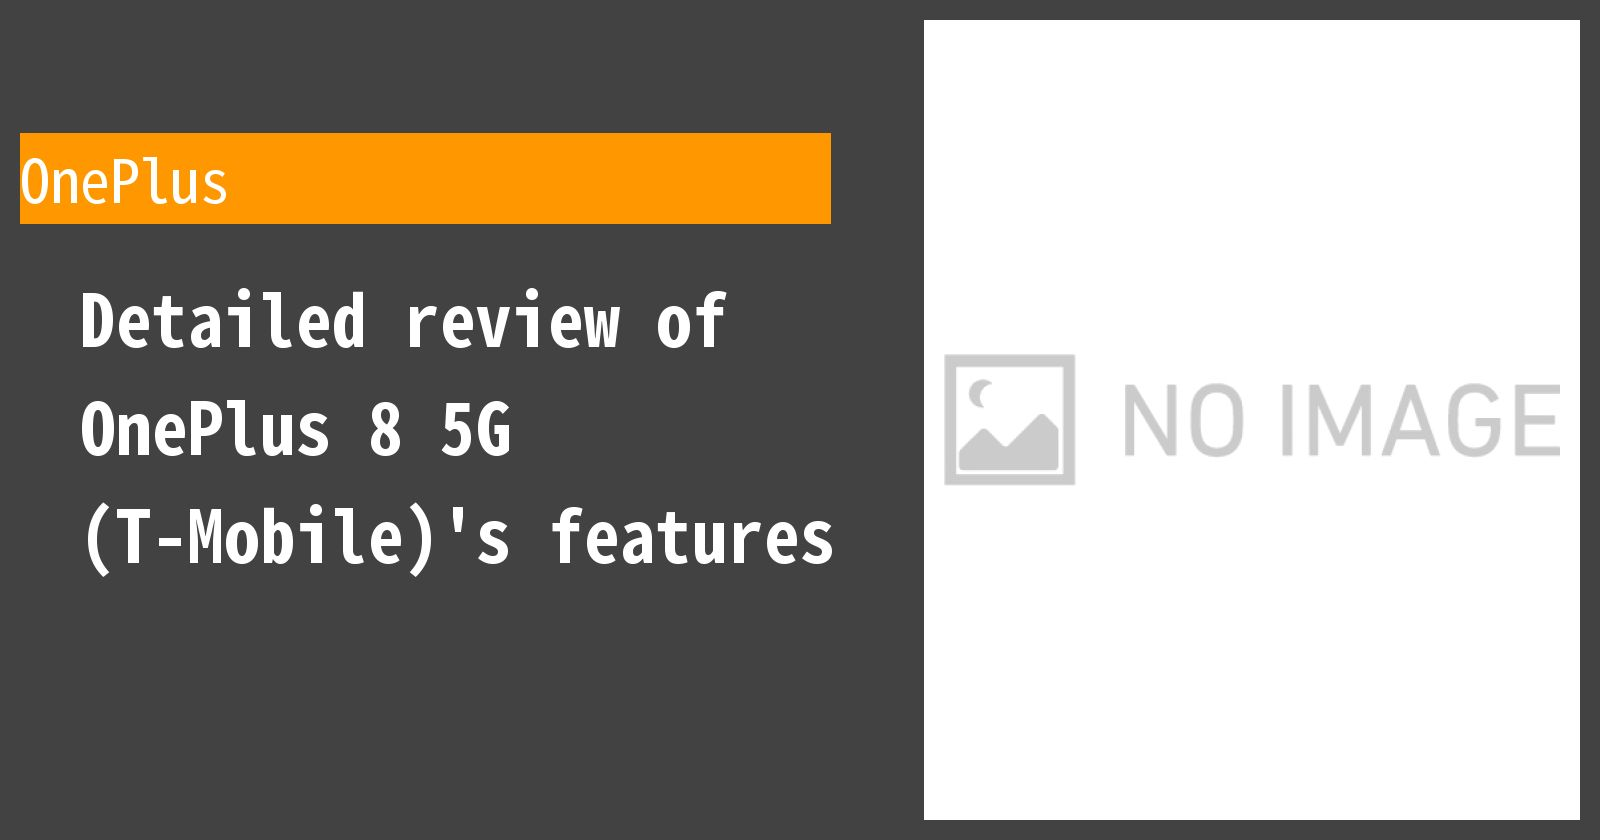 Detailed review of OnePlus 8 5G (T-Mobile)'s features